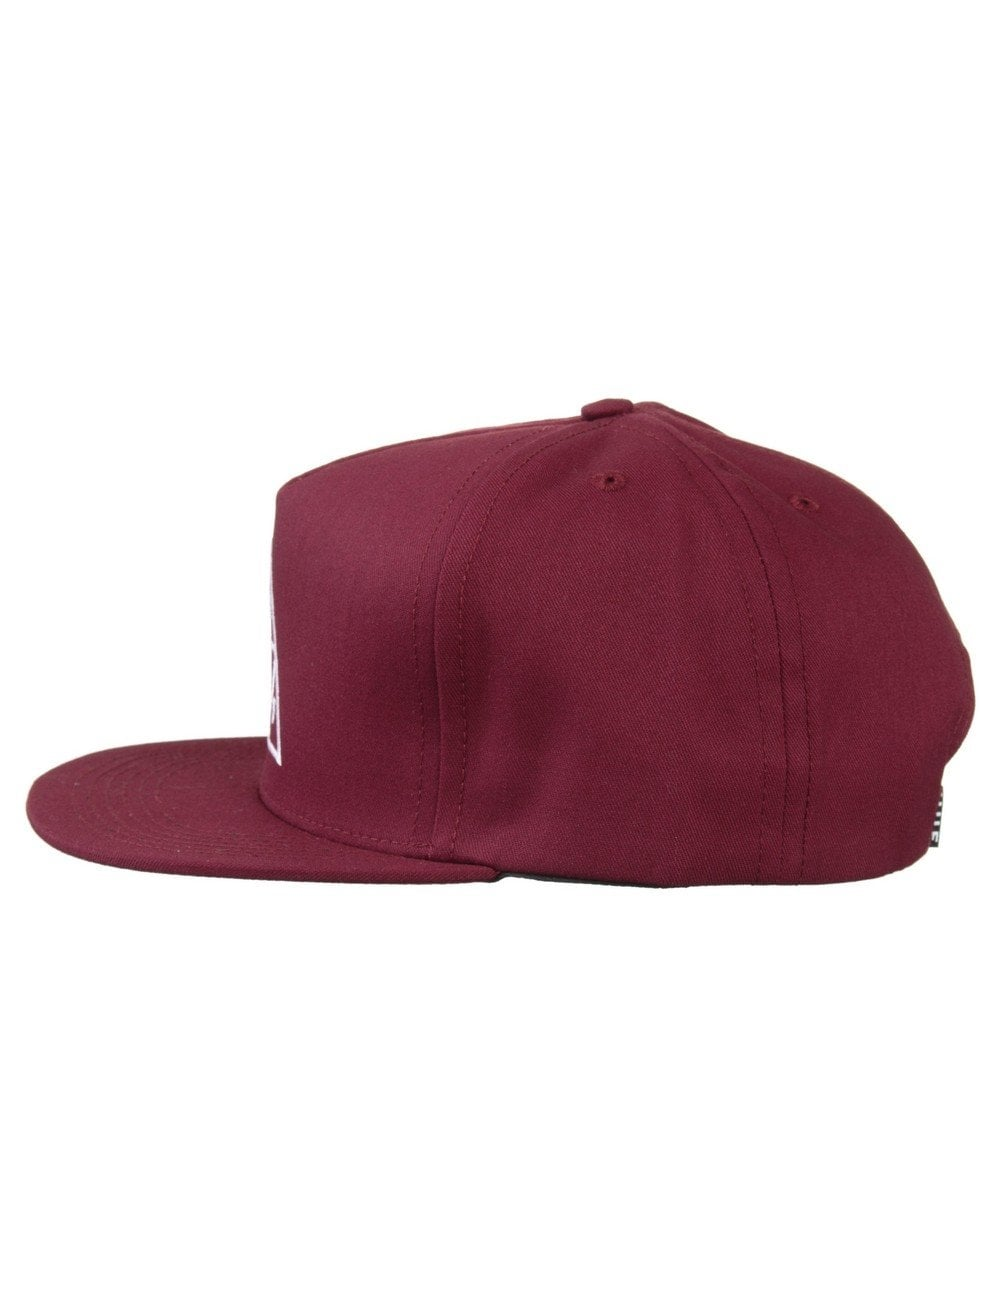 7fb84c77e69 Huf Triple Triangle Snapback Hat - Wine - Accessories from Fat ...